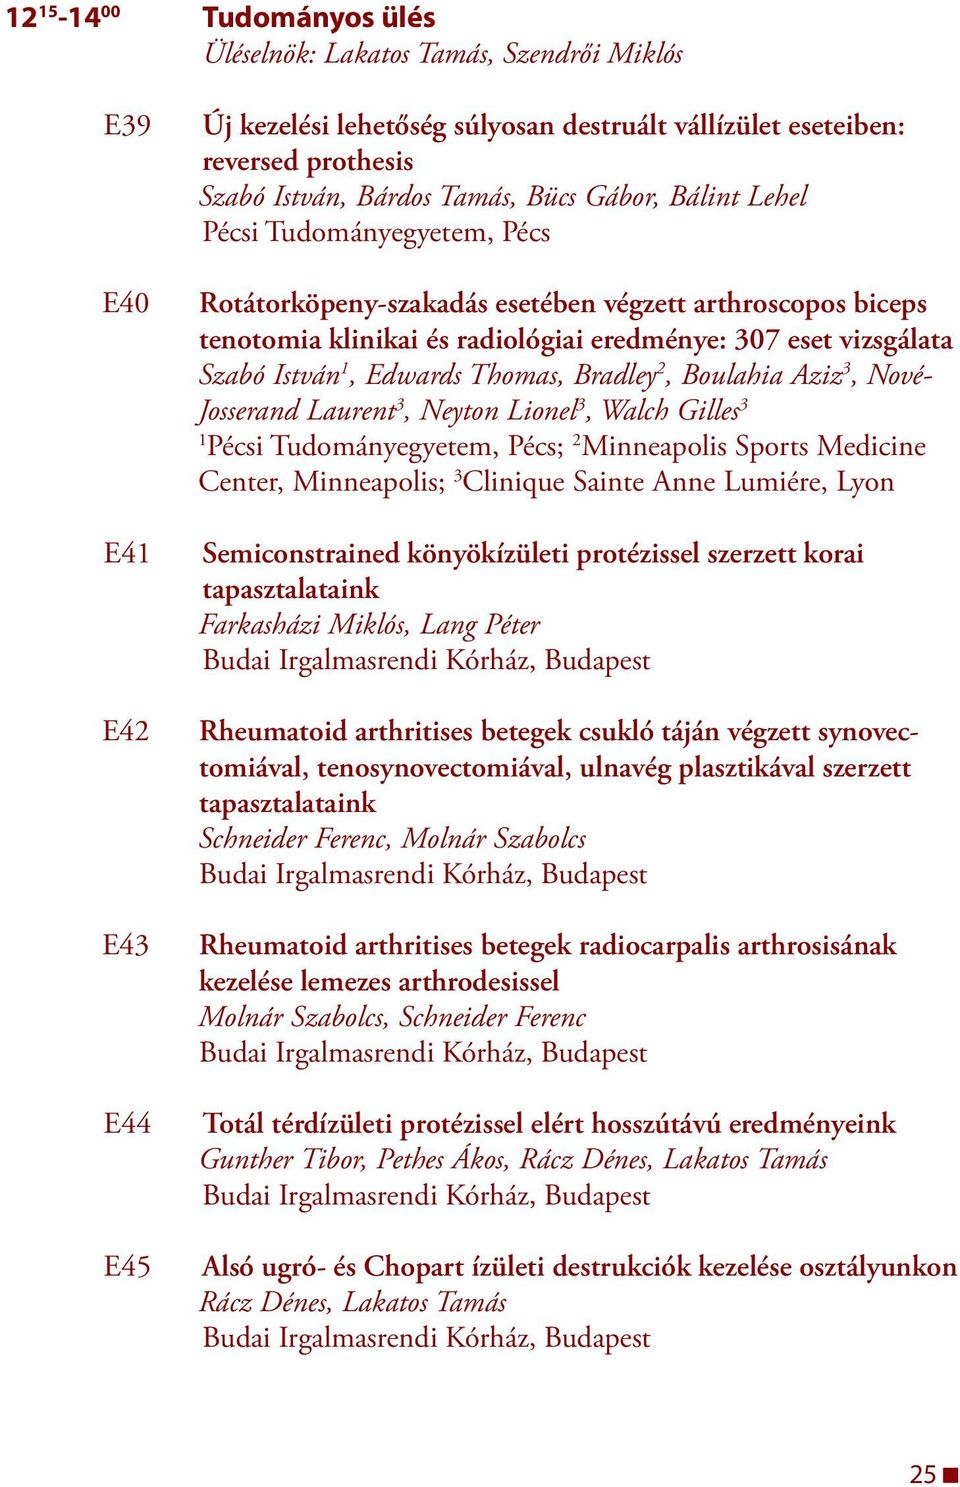 Edwards Thomas, Bradley 2, Boulahia Aziz 3, Nové- Josserand Laurent 3, Ney ton Lionel 3, Walch Gilles 3 Pécsi Tudományegyetem, Pécs; 2 Minneapolis Sports Medicine Center, Minneapolis; 3 Clin ique